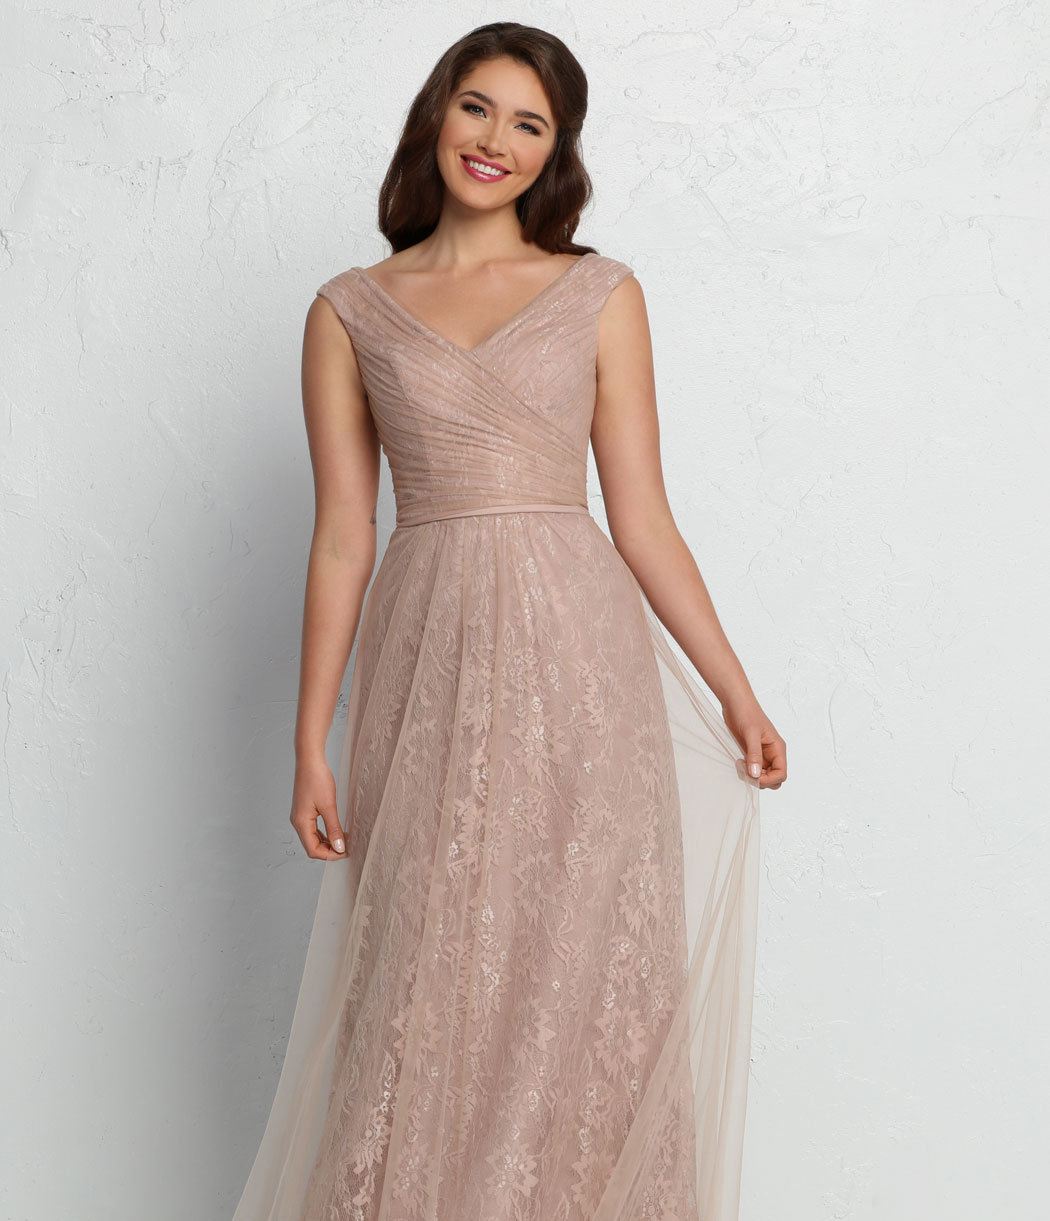 Wedding bridesmaid dresses davinci bridal collection informal bridesmaid ombrellifo Images